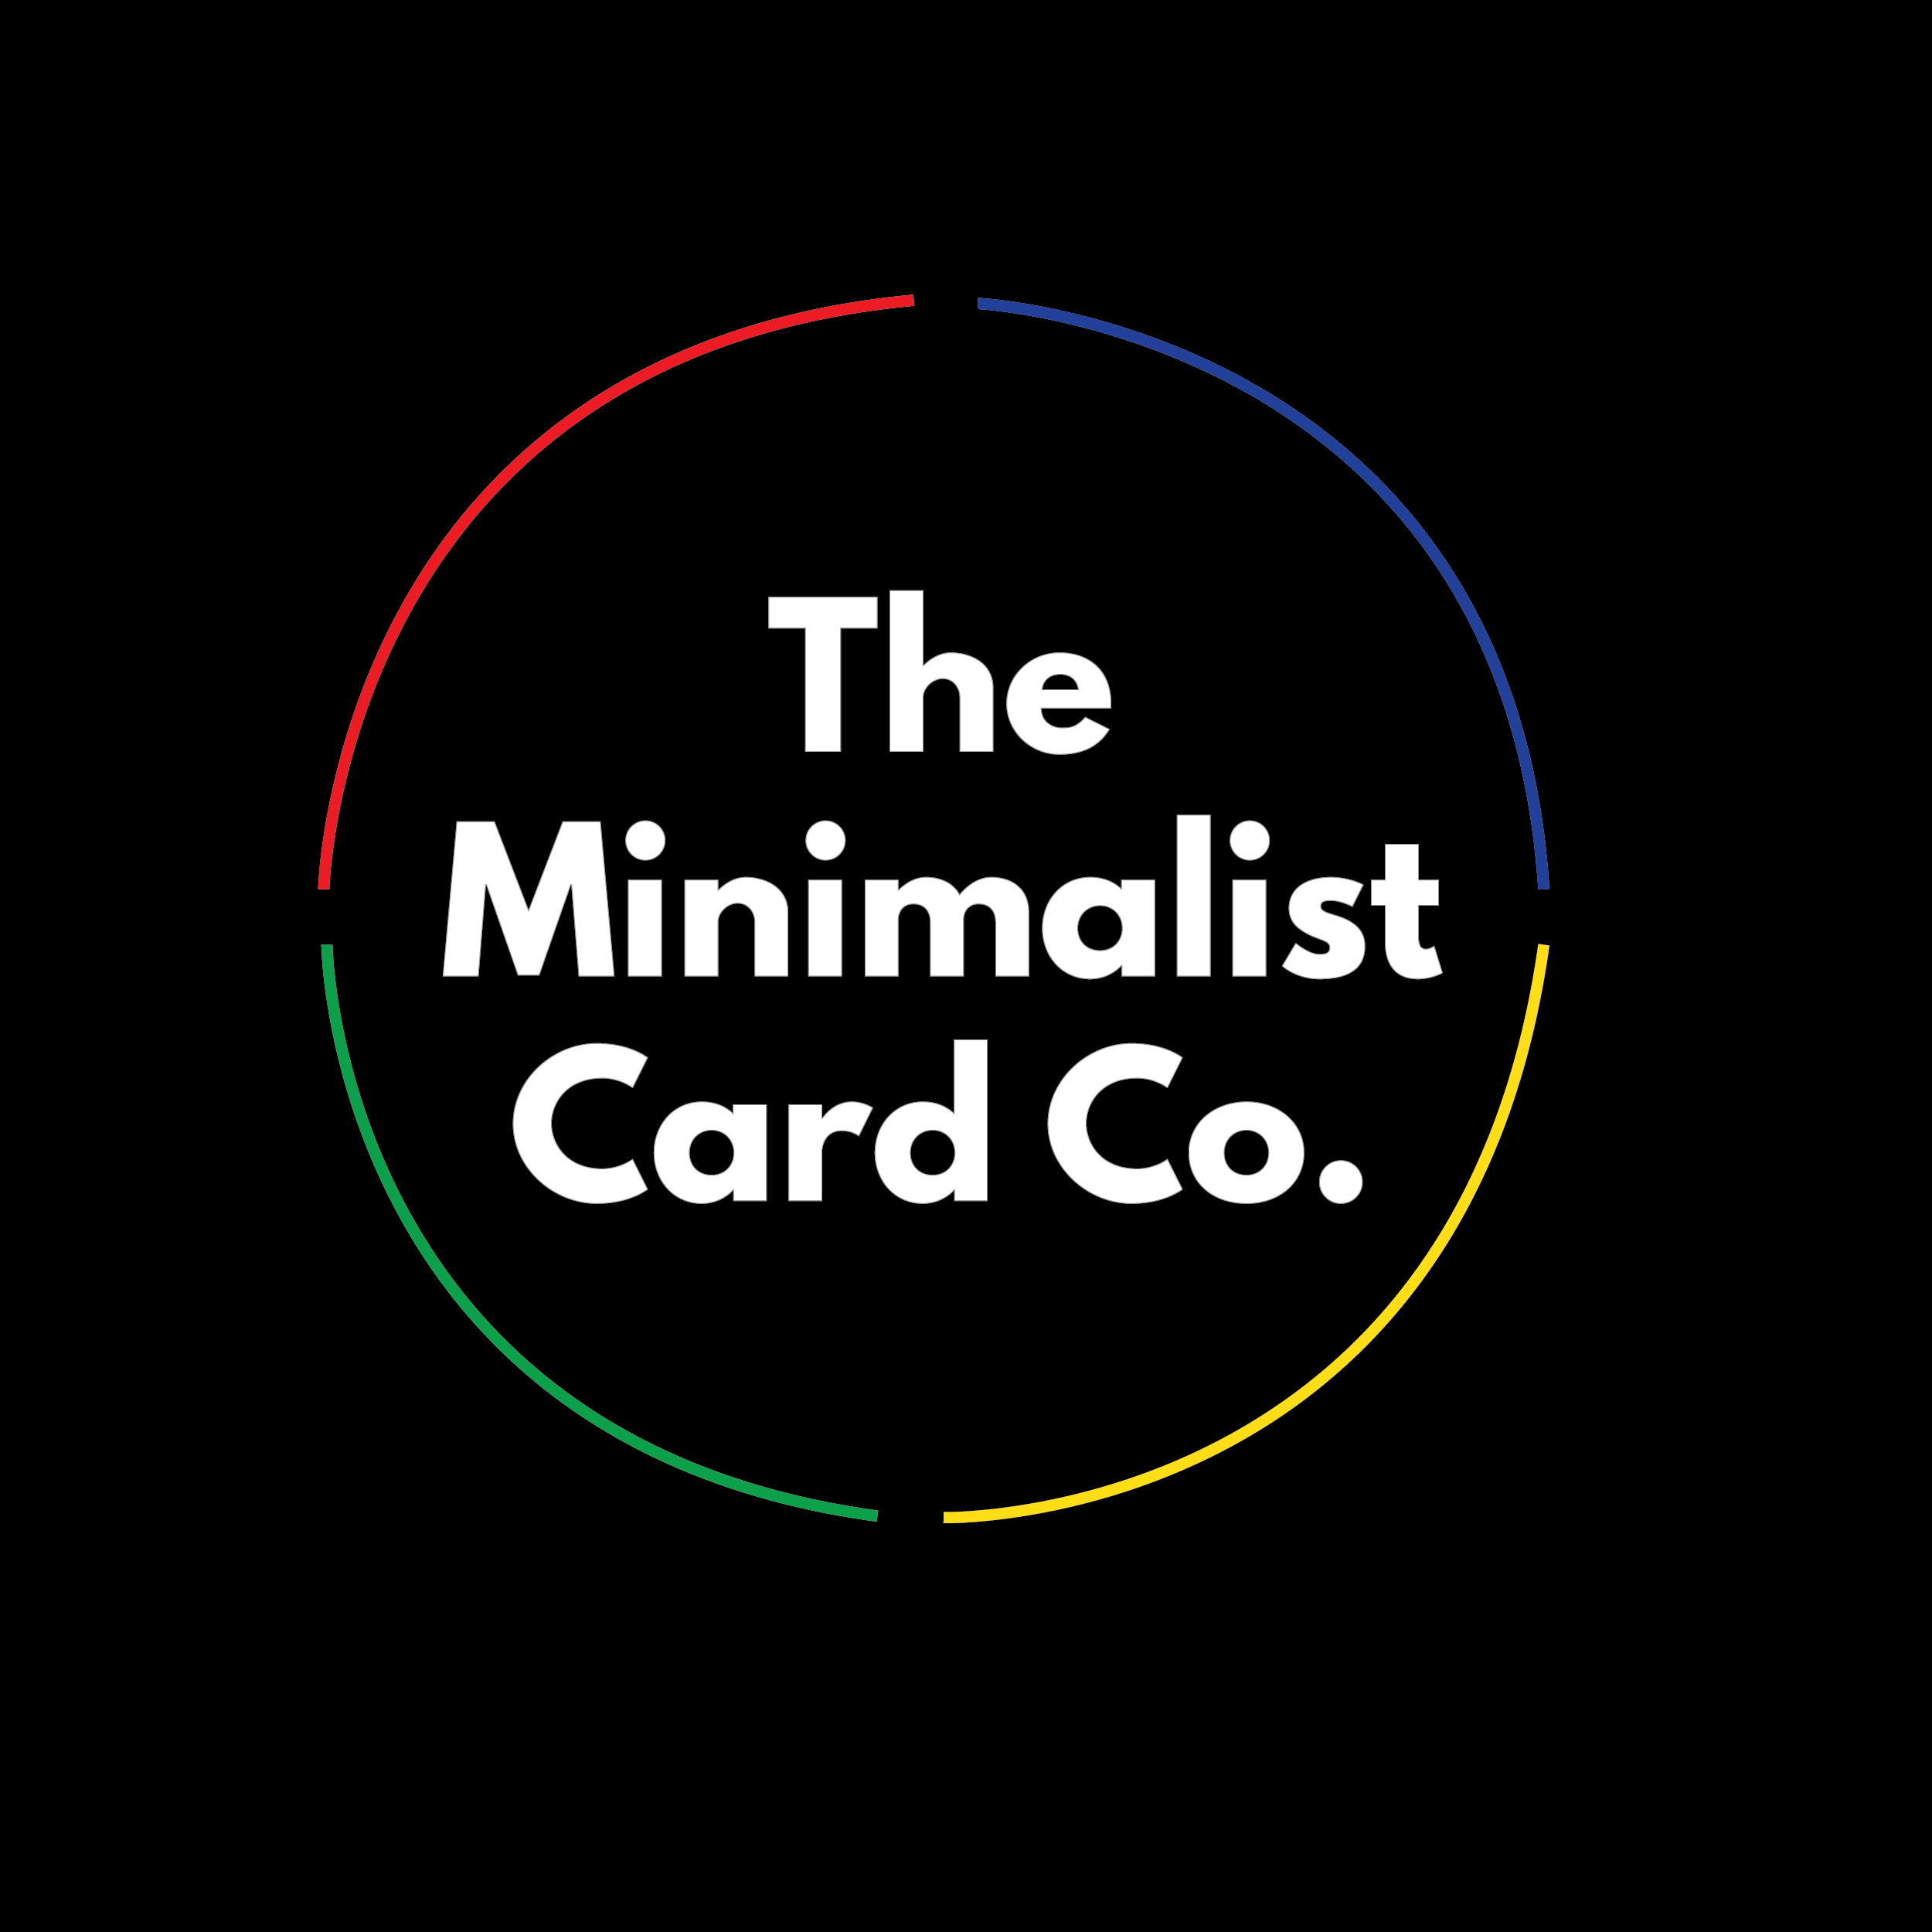 The Minimalist Card Company